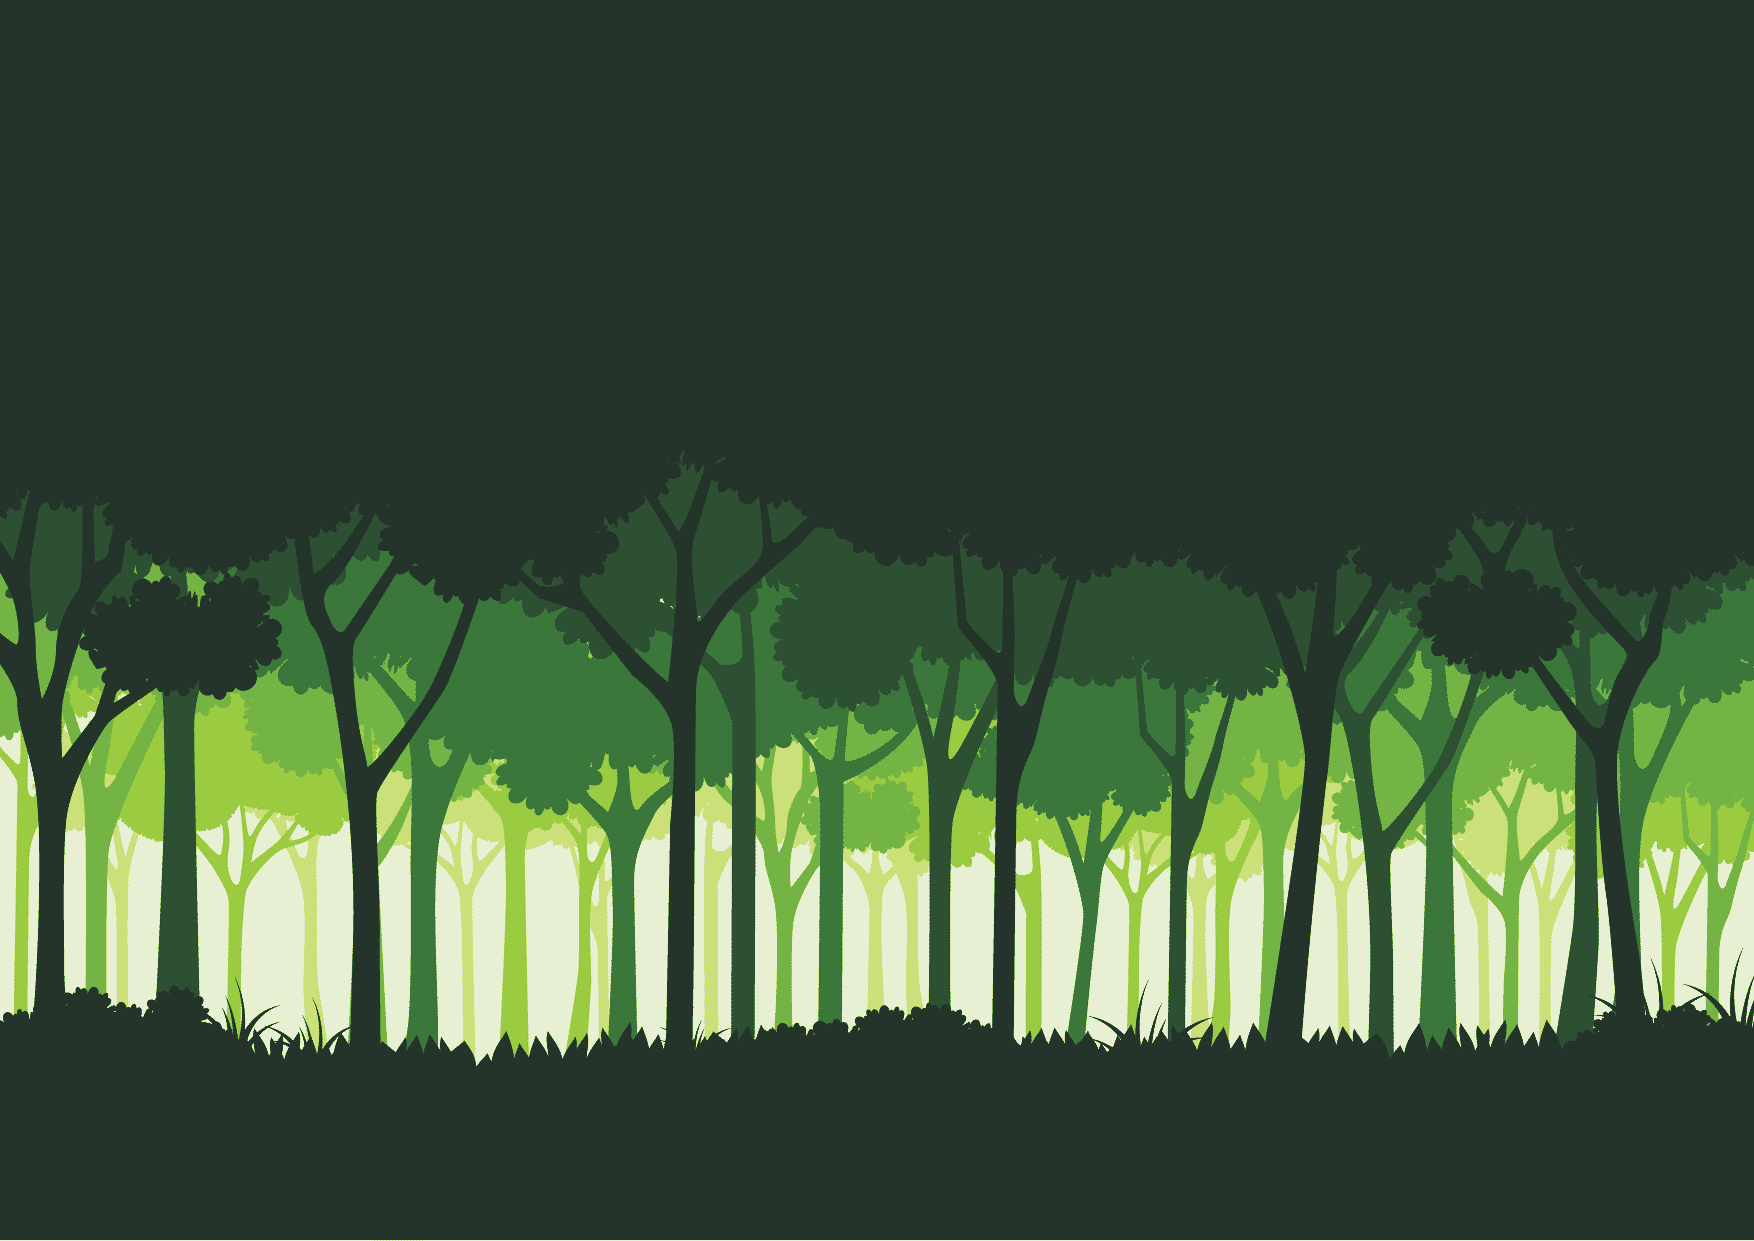 Plant a tree to save the Earth Banner Image